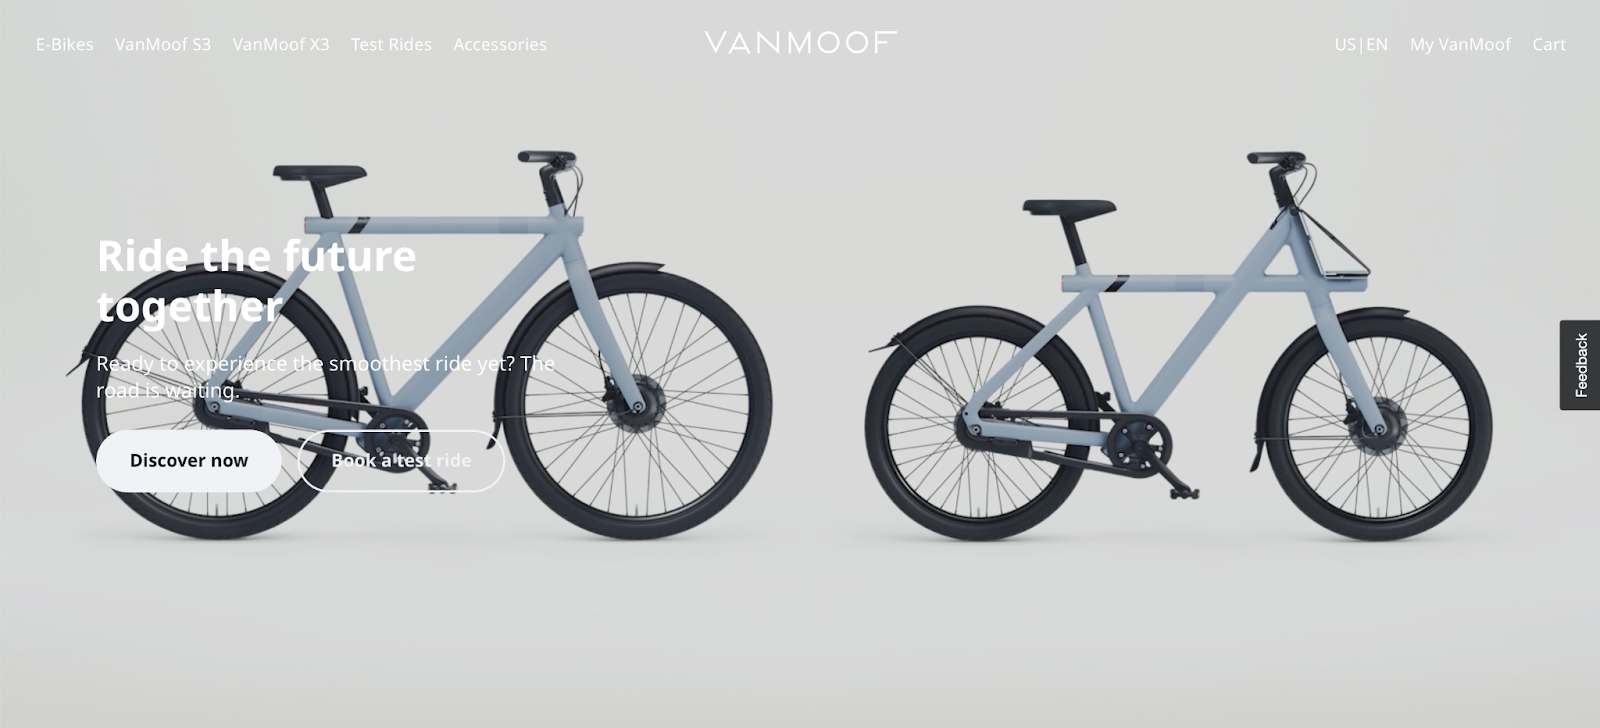 VanMoof hero section is a short, amazing, looping animation of e-bike features